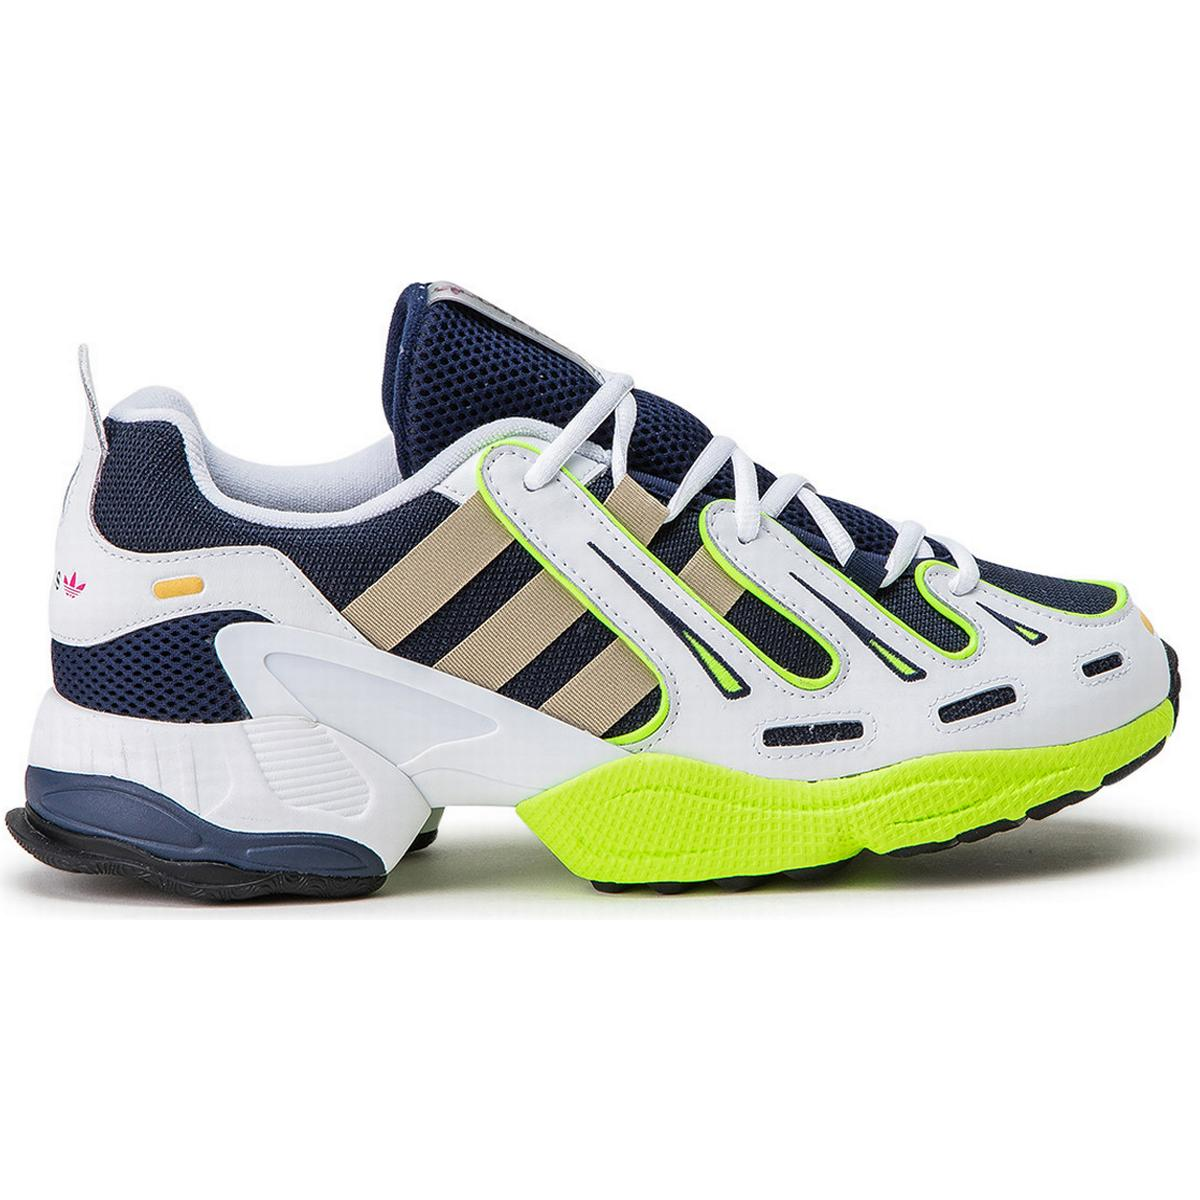 adidas boost skroutz, Adidas originals junior sko gazelle